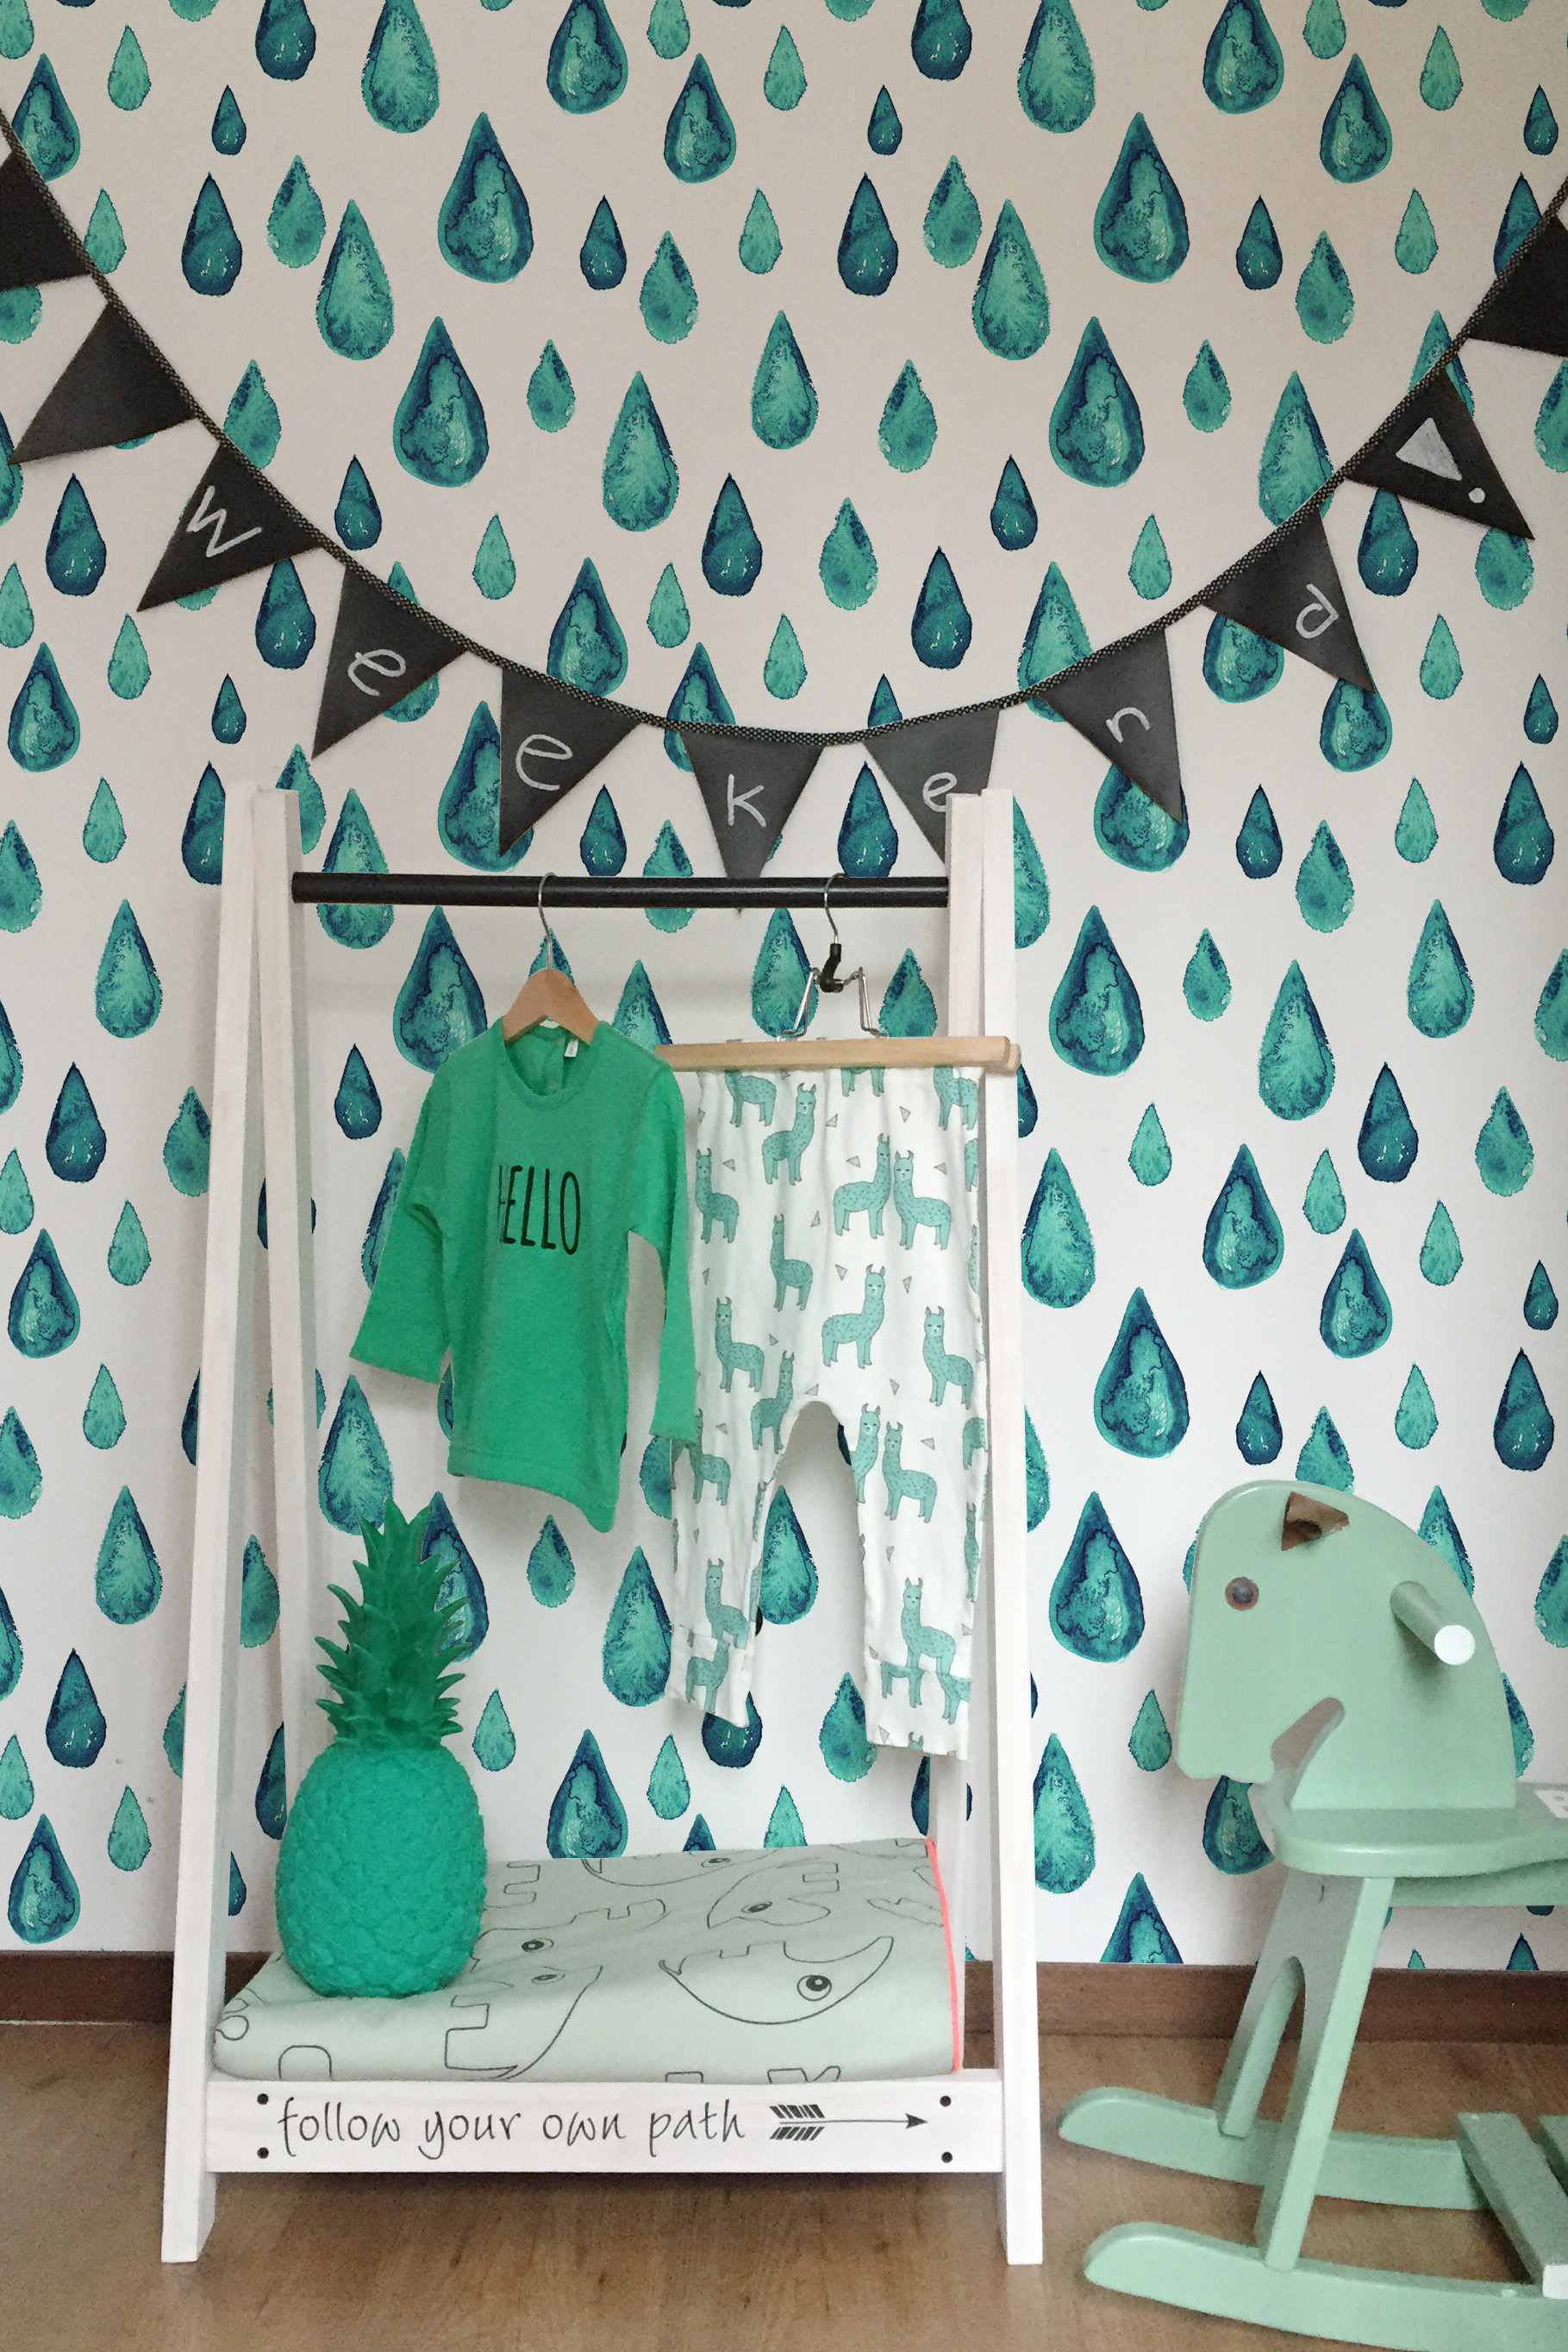 Turquoise Raindrops Removable Wallpaper